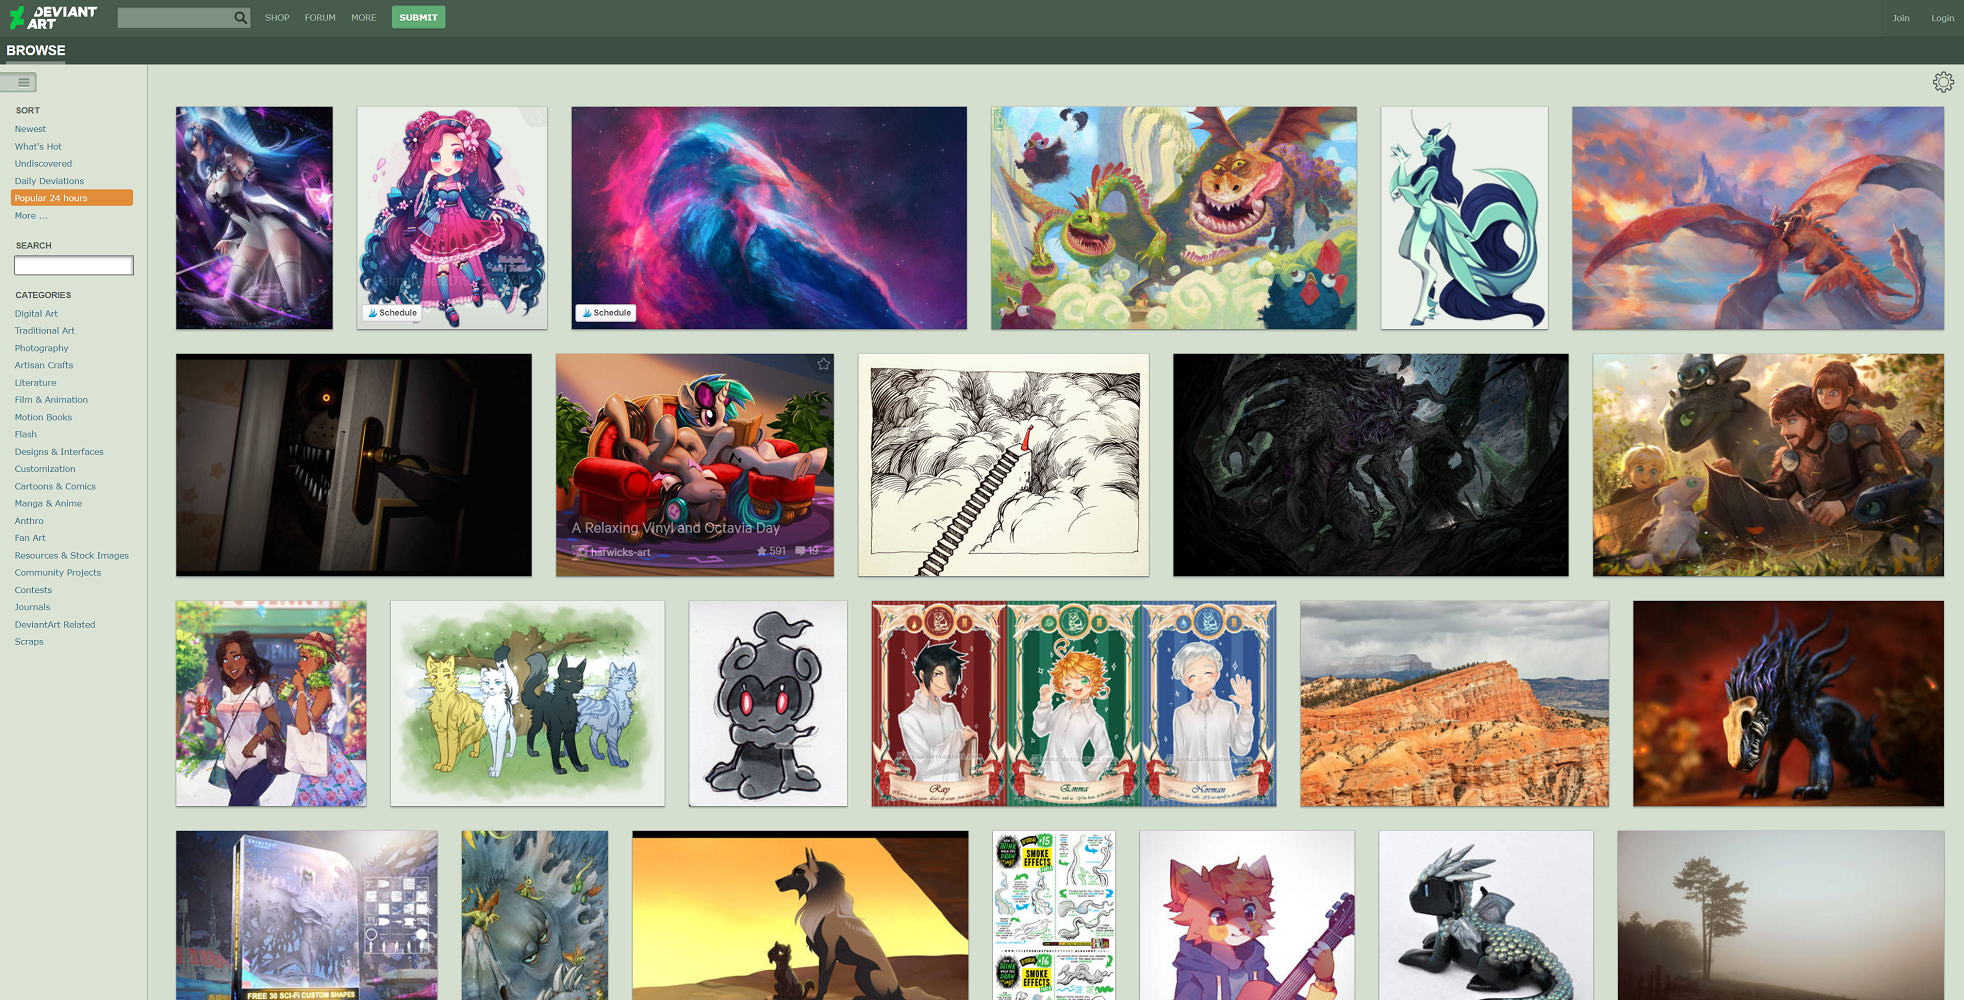 New offer - Write and publish guest post DA87 on DeviantArt - Online Art Gallery and Community